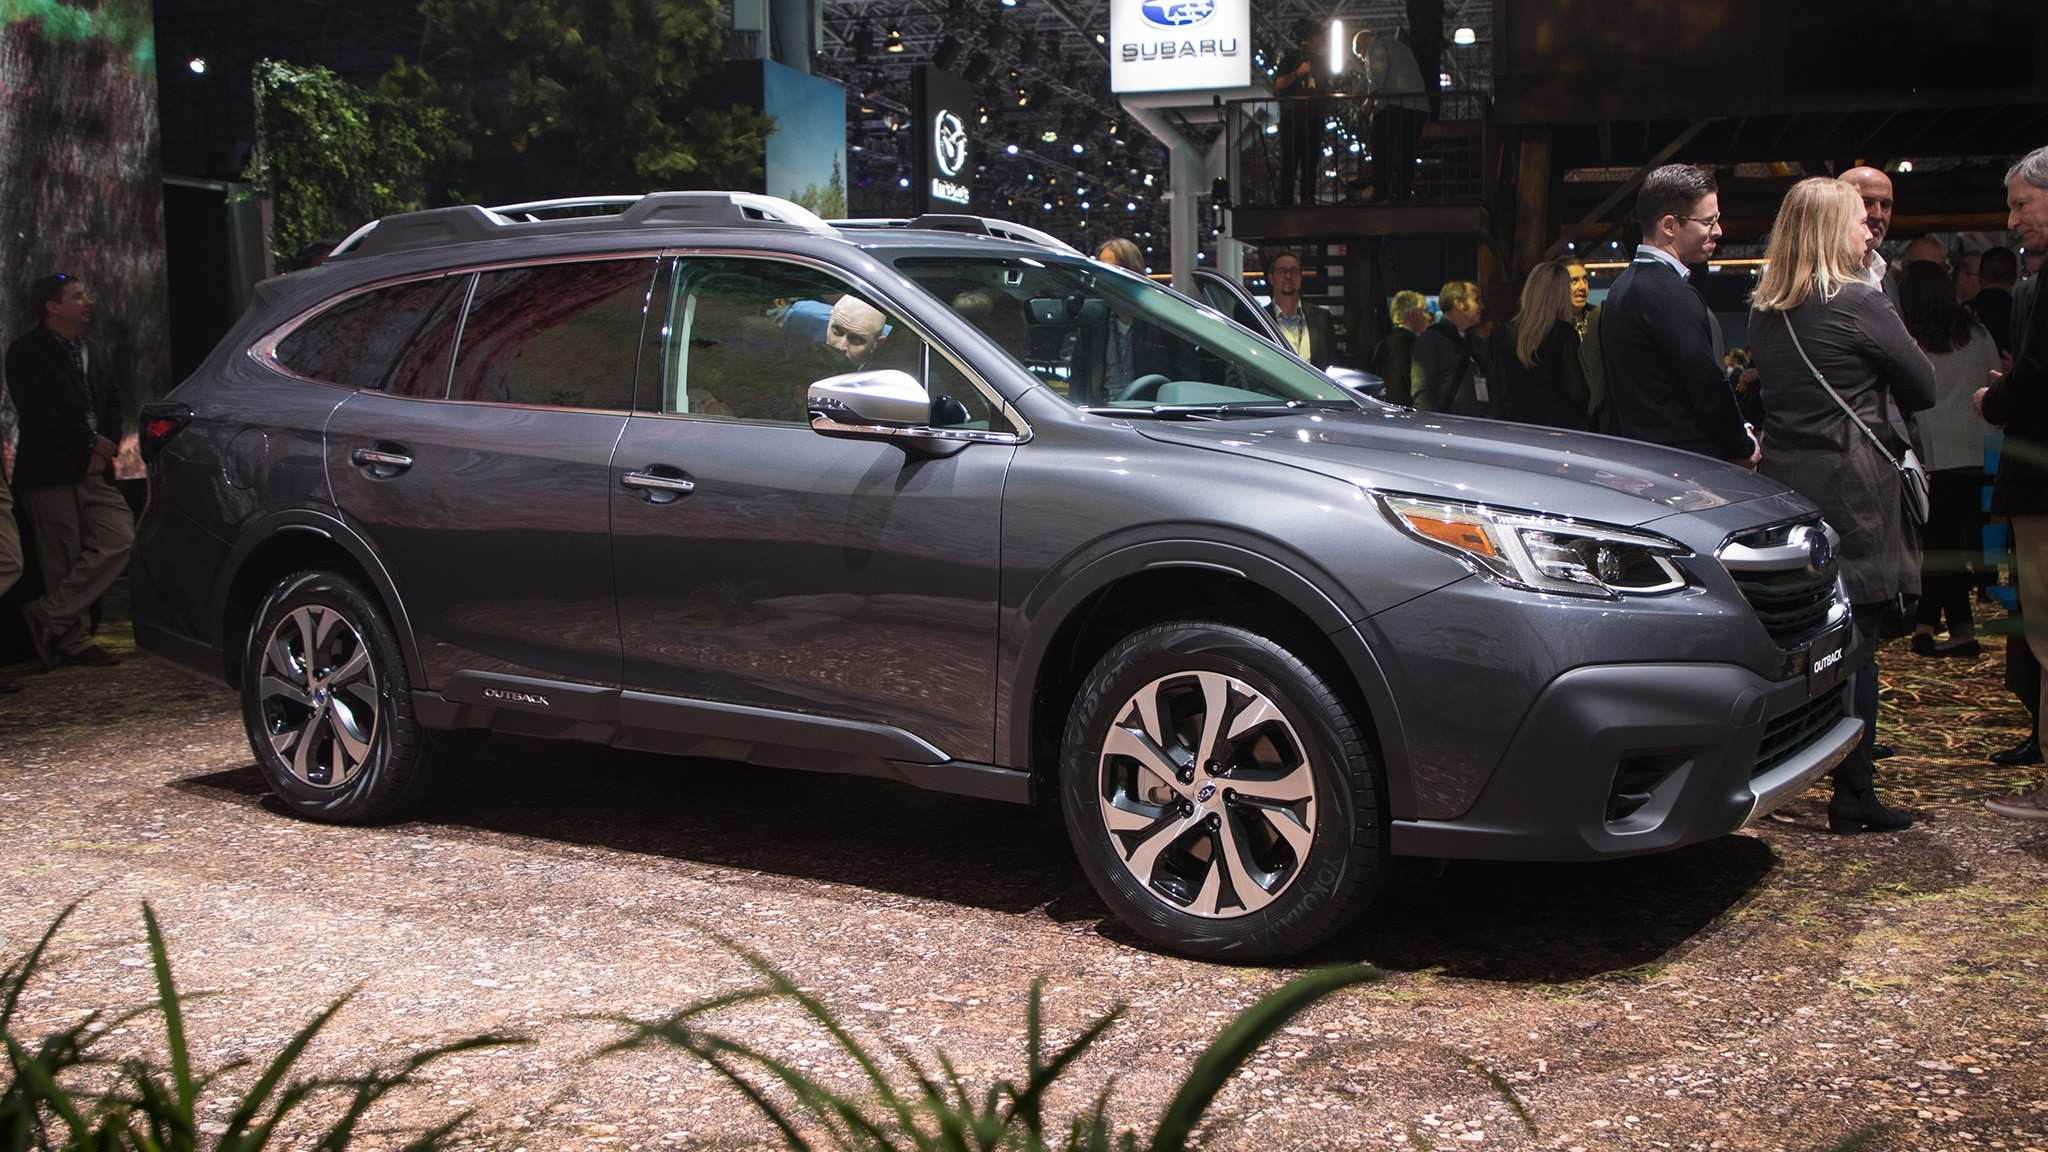 57 New 2020 Subaru Outback Exterior Colors Ratings with 2020 Subaru Outback Exterior Colors